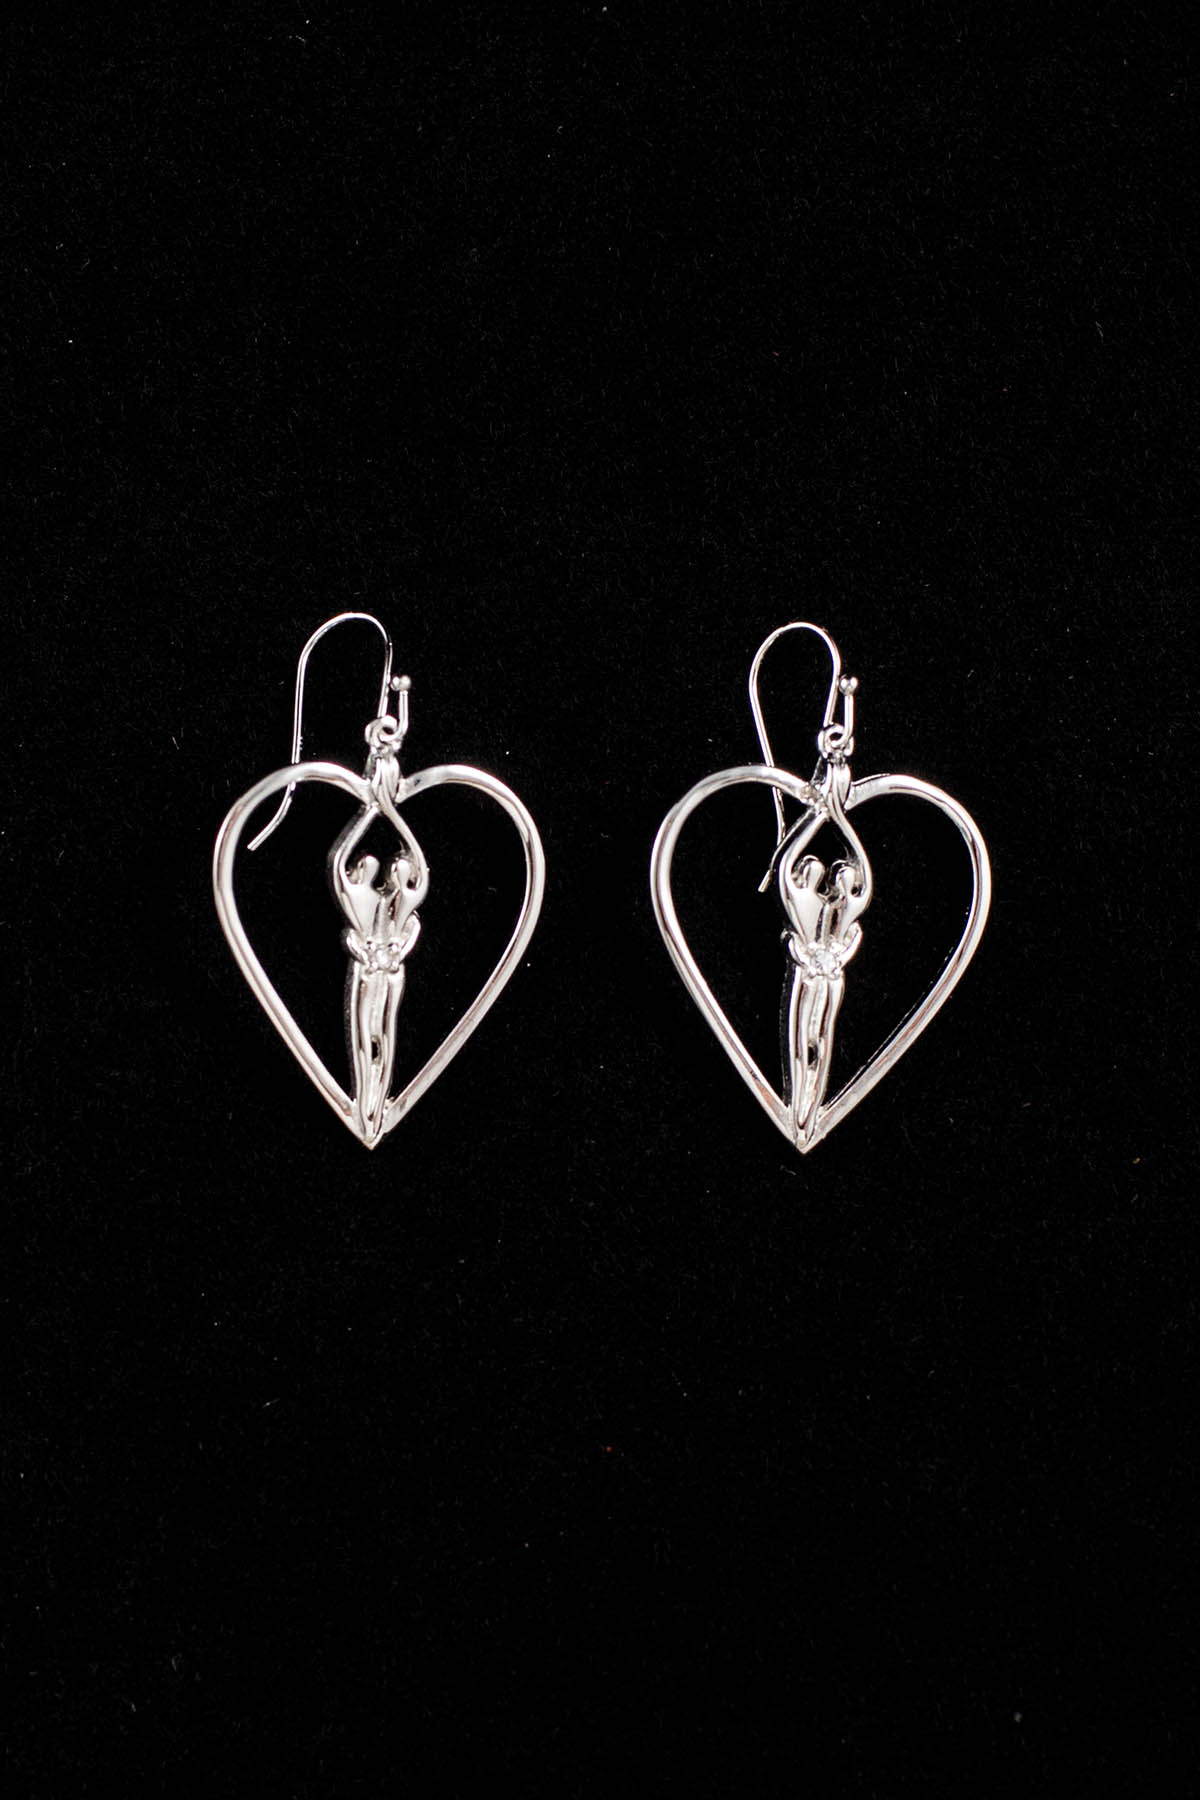 Symbol Of Love Earrings